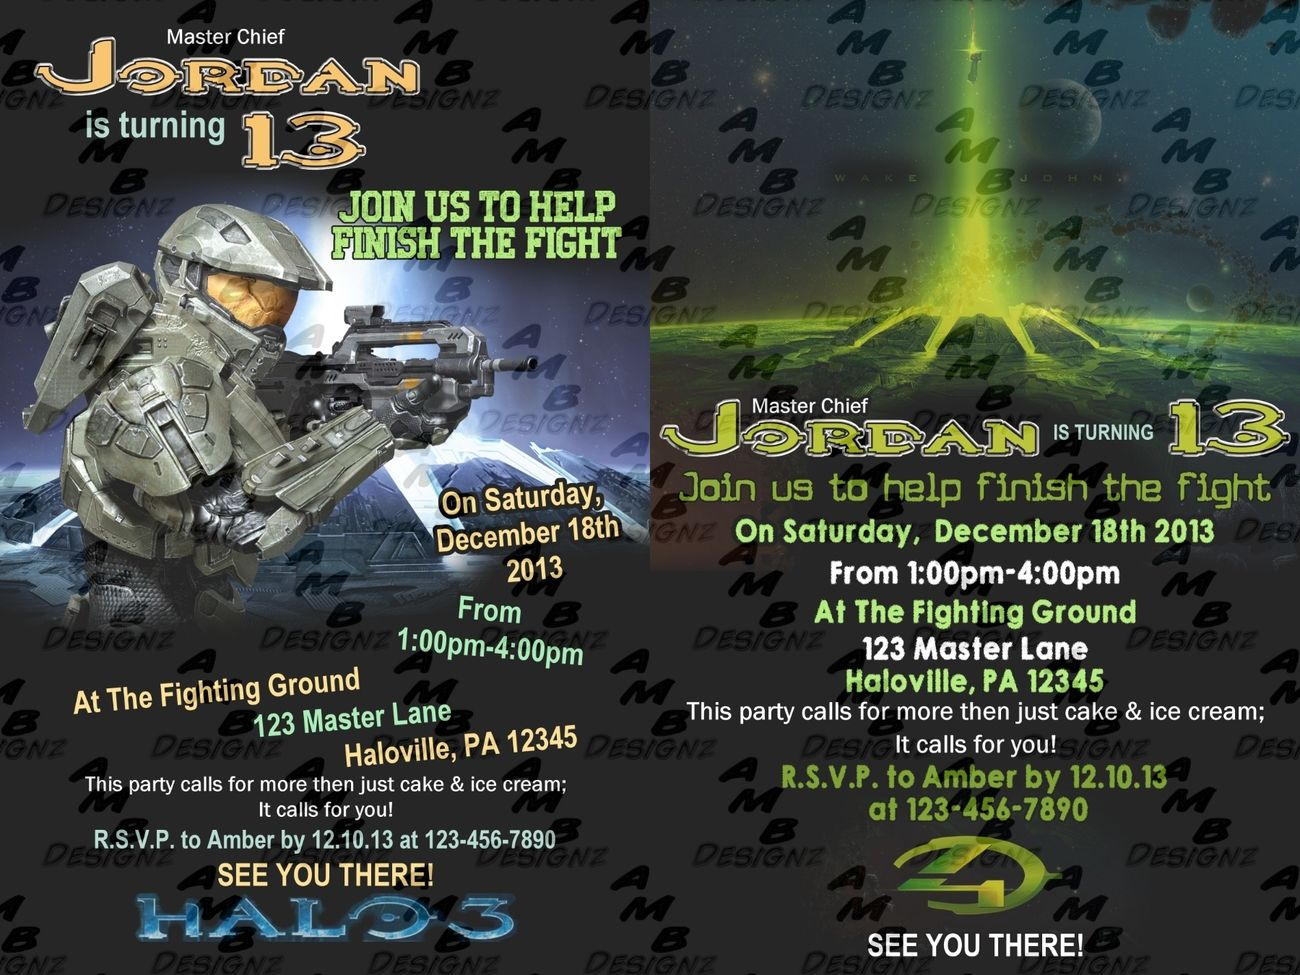 HALO Invitations & matching Party Supplies available    This